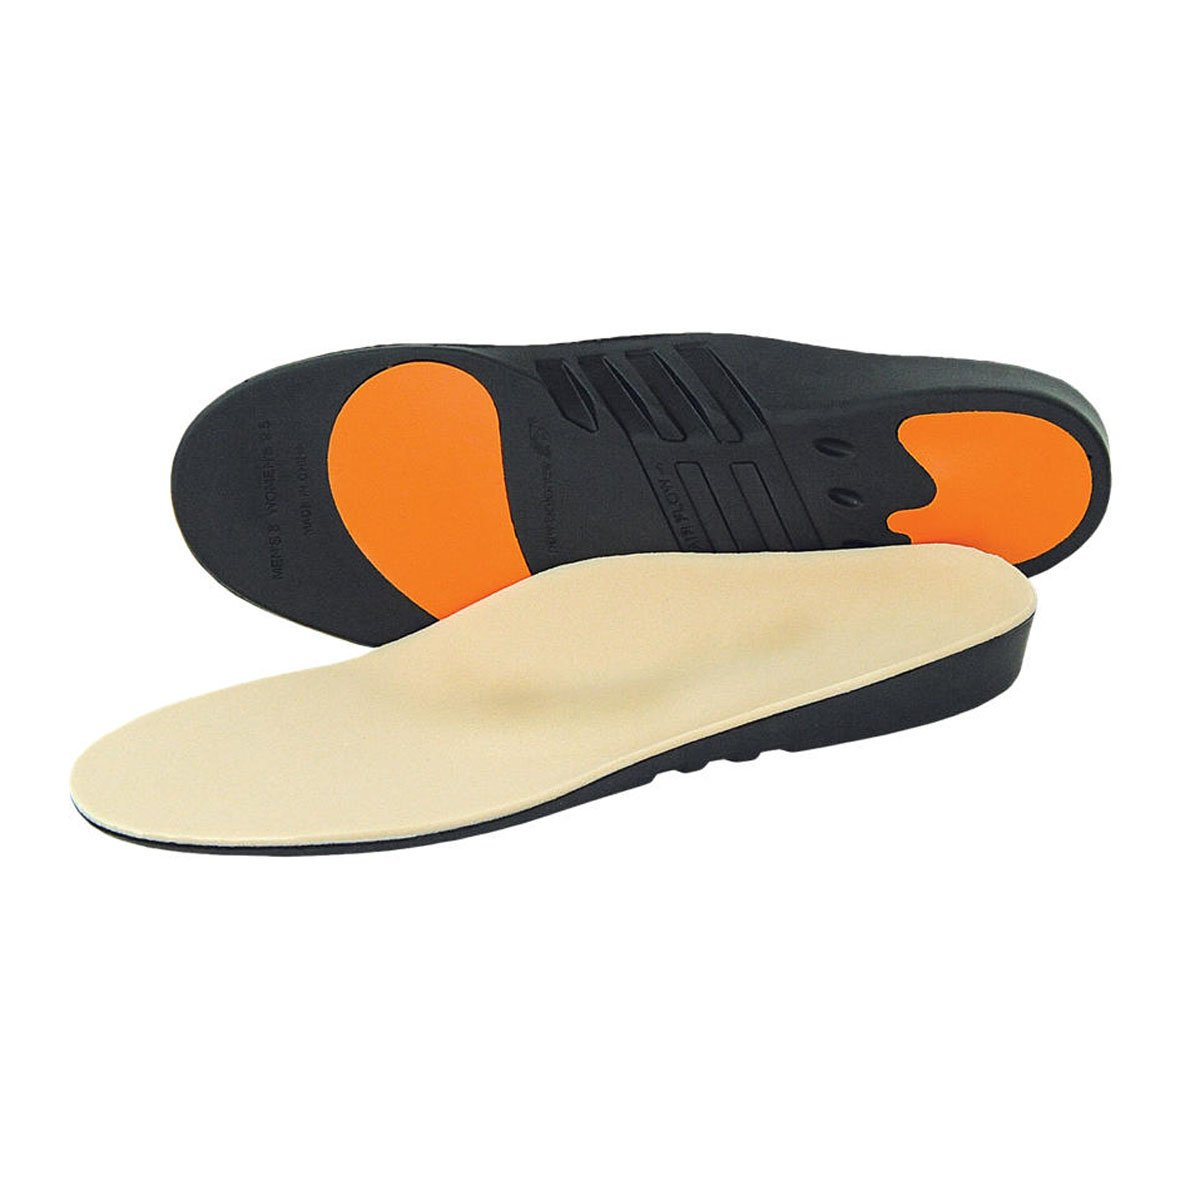 New Balance Insoles IPR3030 Pressure Relief Insole, Beige, 14-14.5 D US Mens